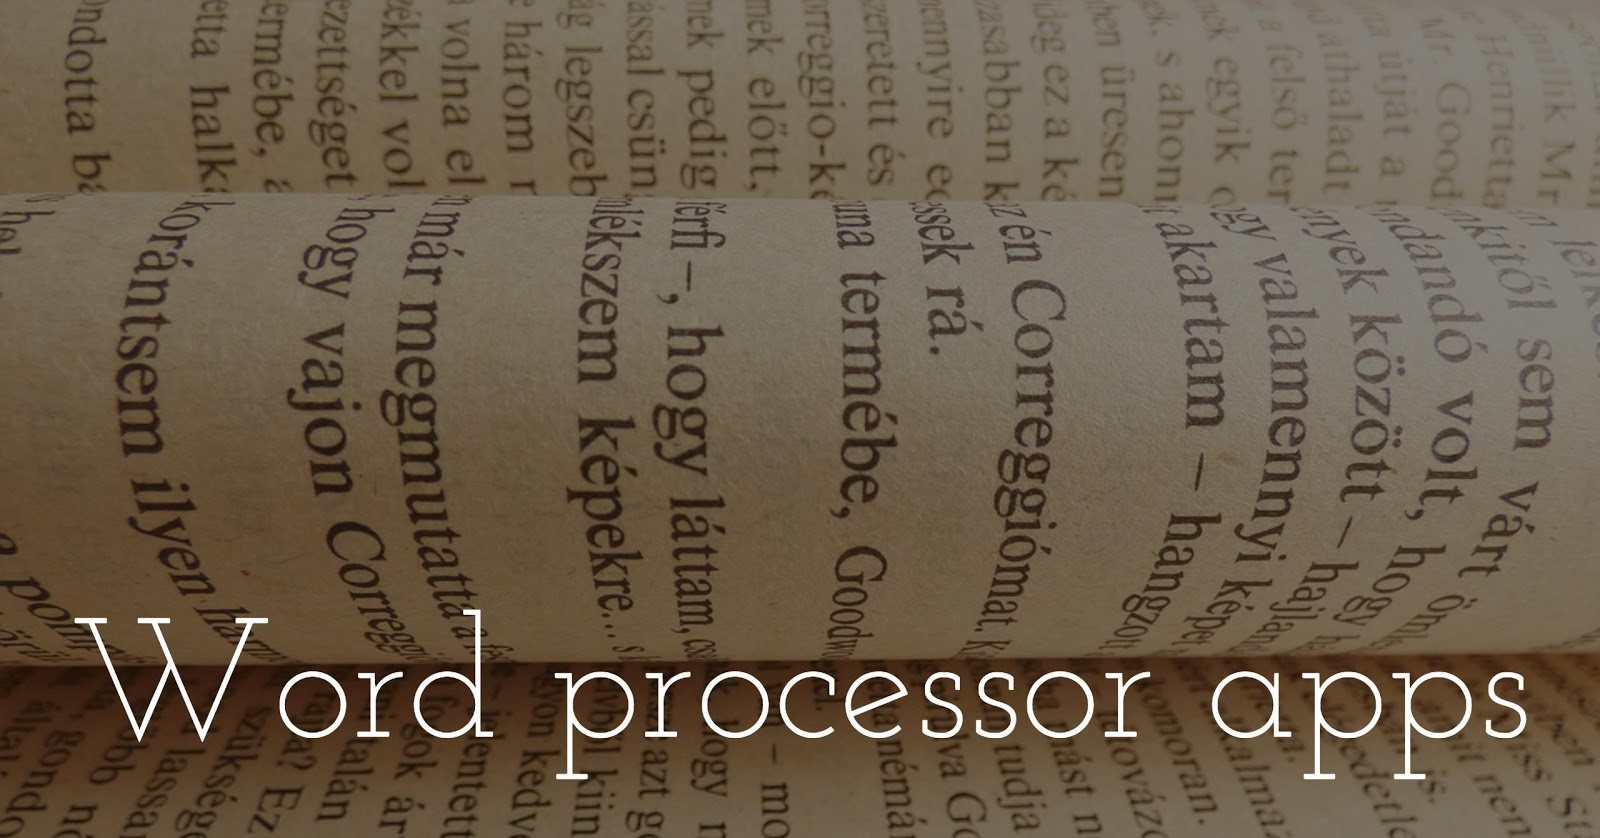 Best word processing apps for iPhone & iPad